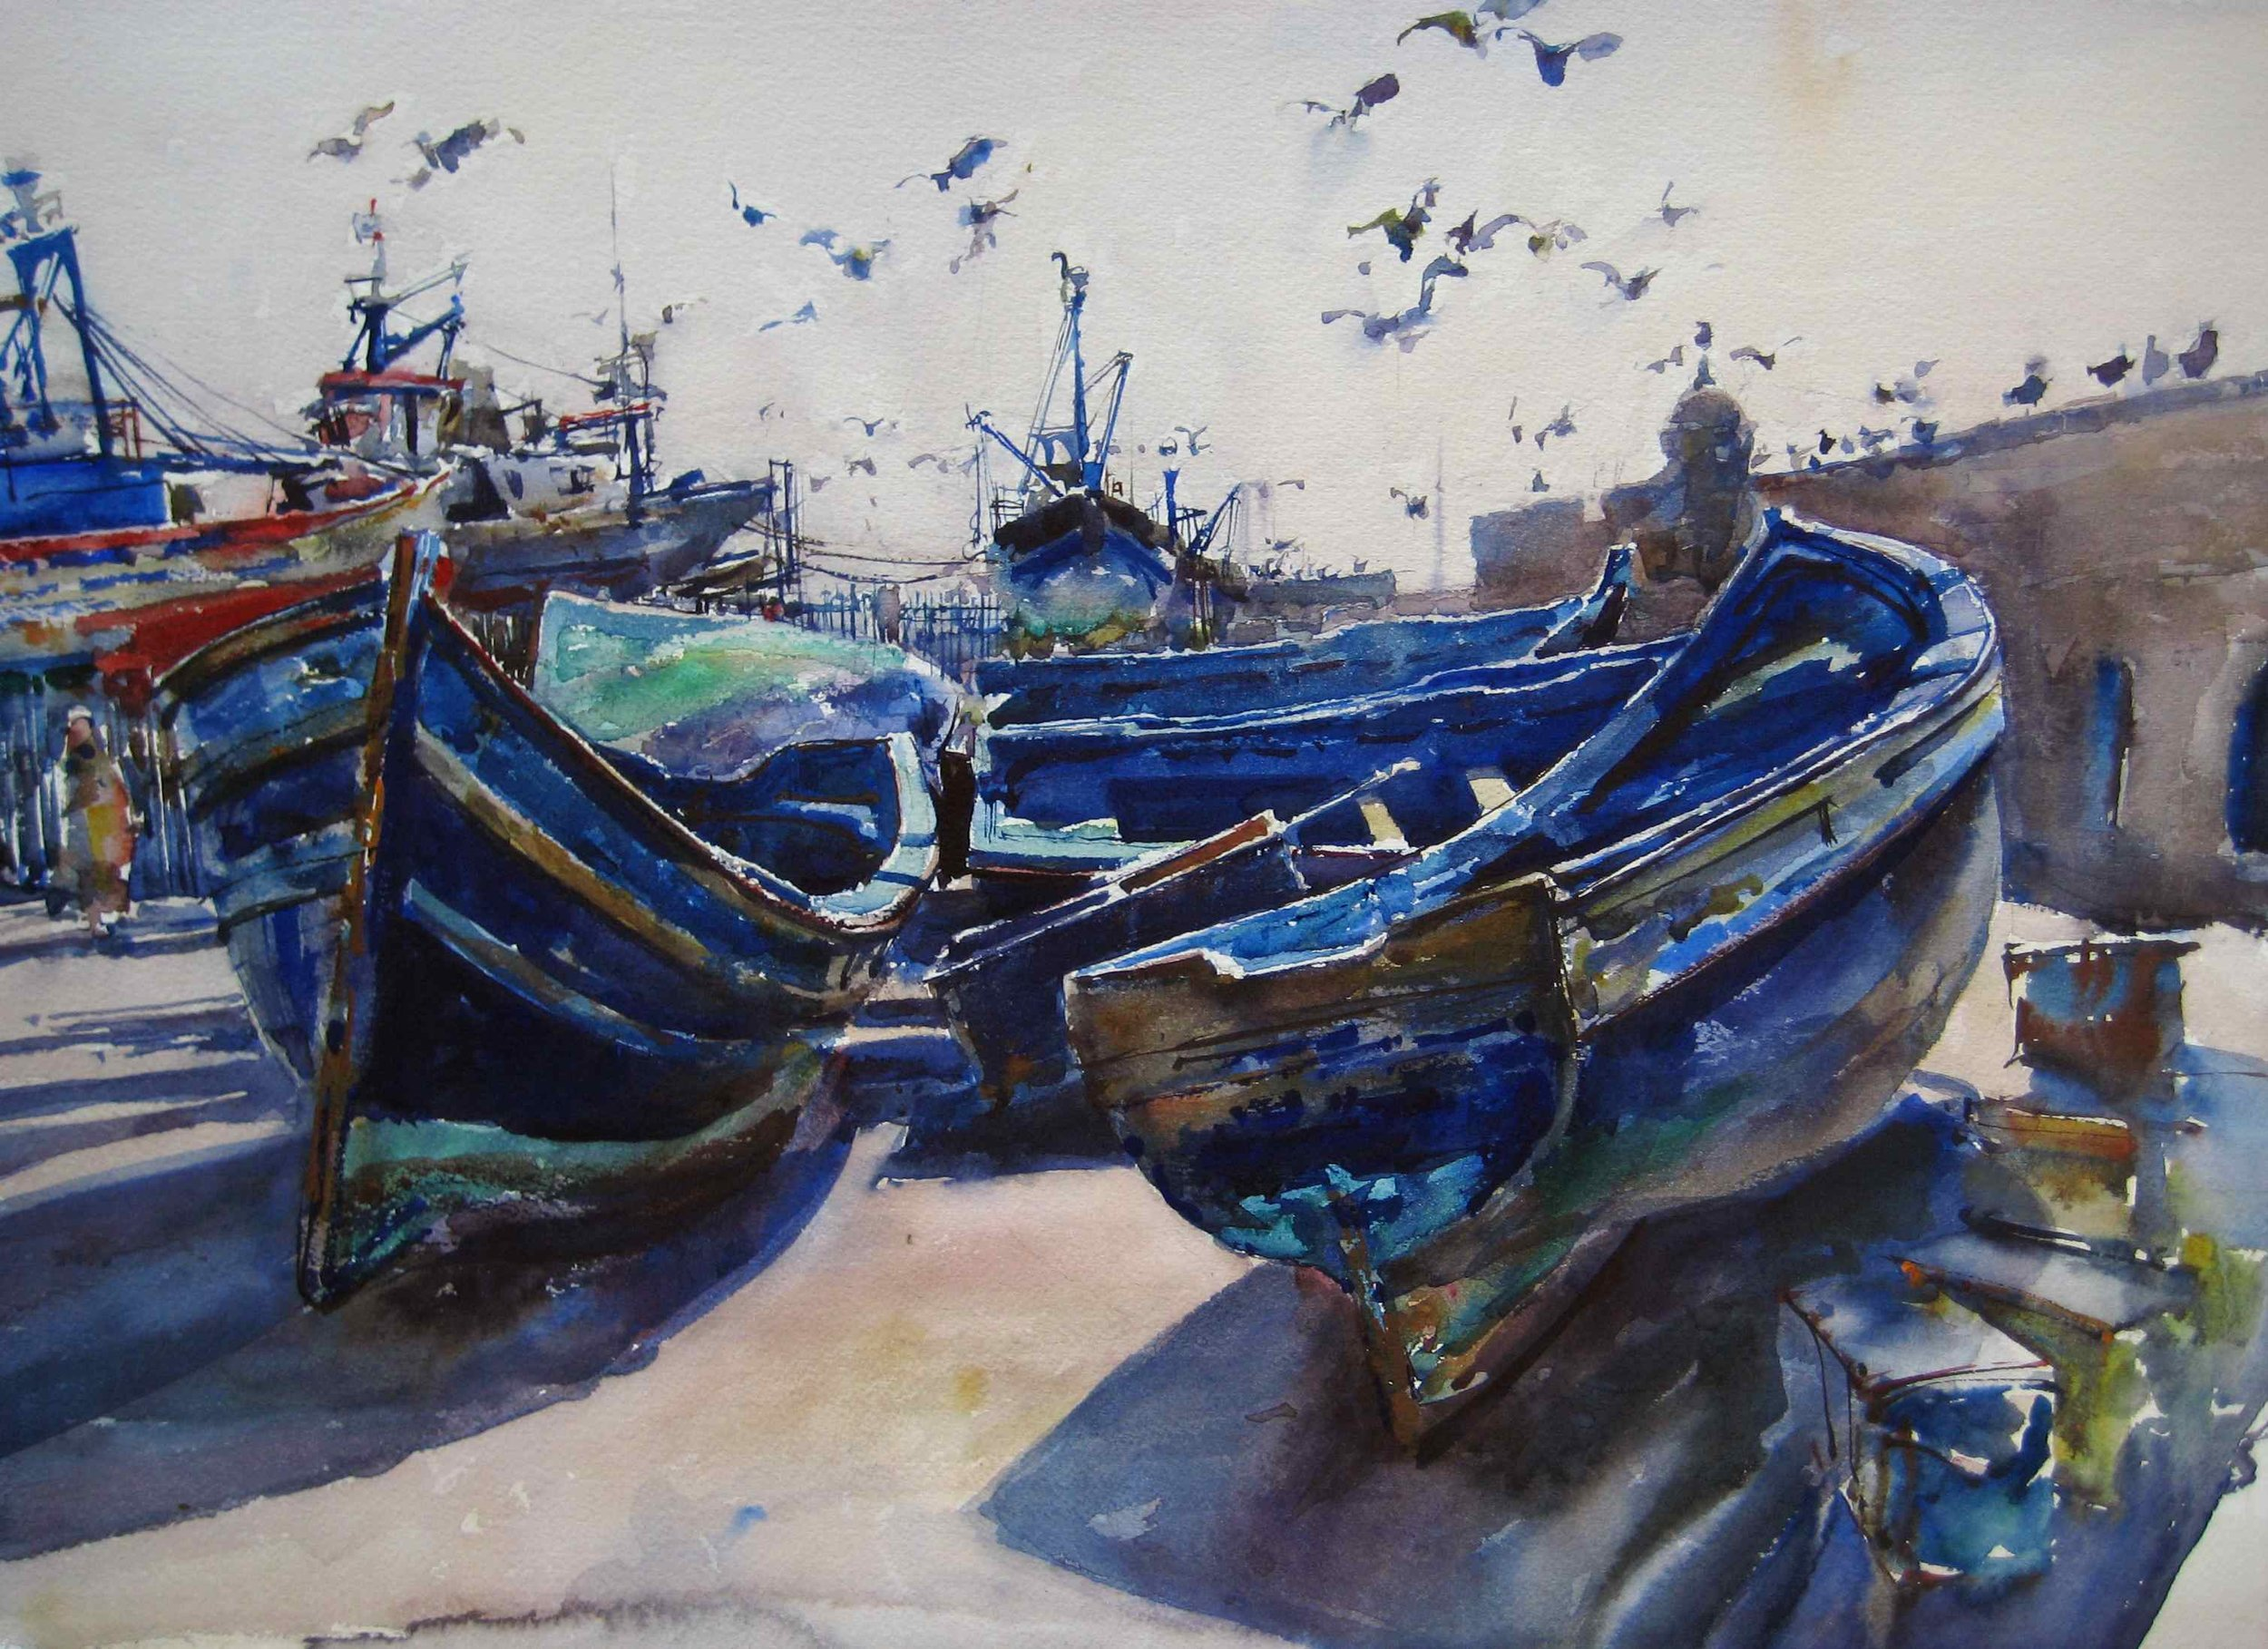 Birds and Boats, a watercolor from Morocco.